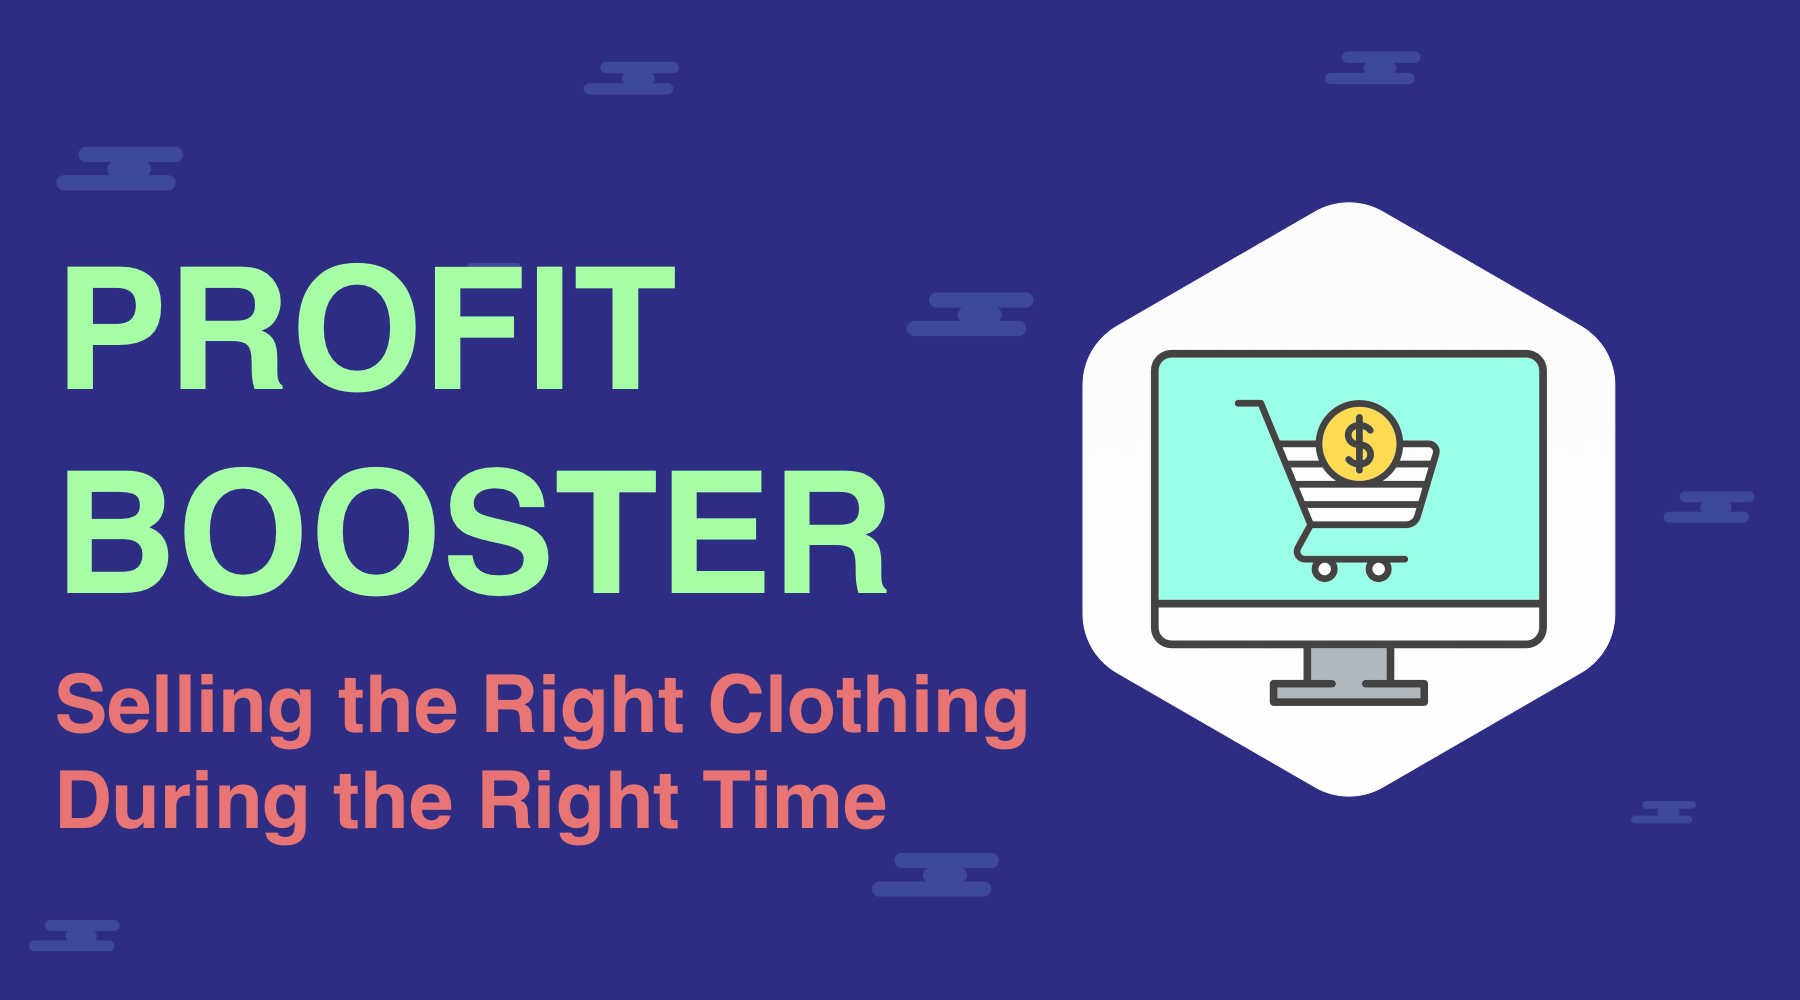 Profit Boosters: Selling the Right Clothing During the Right Time